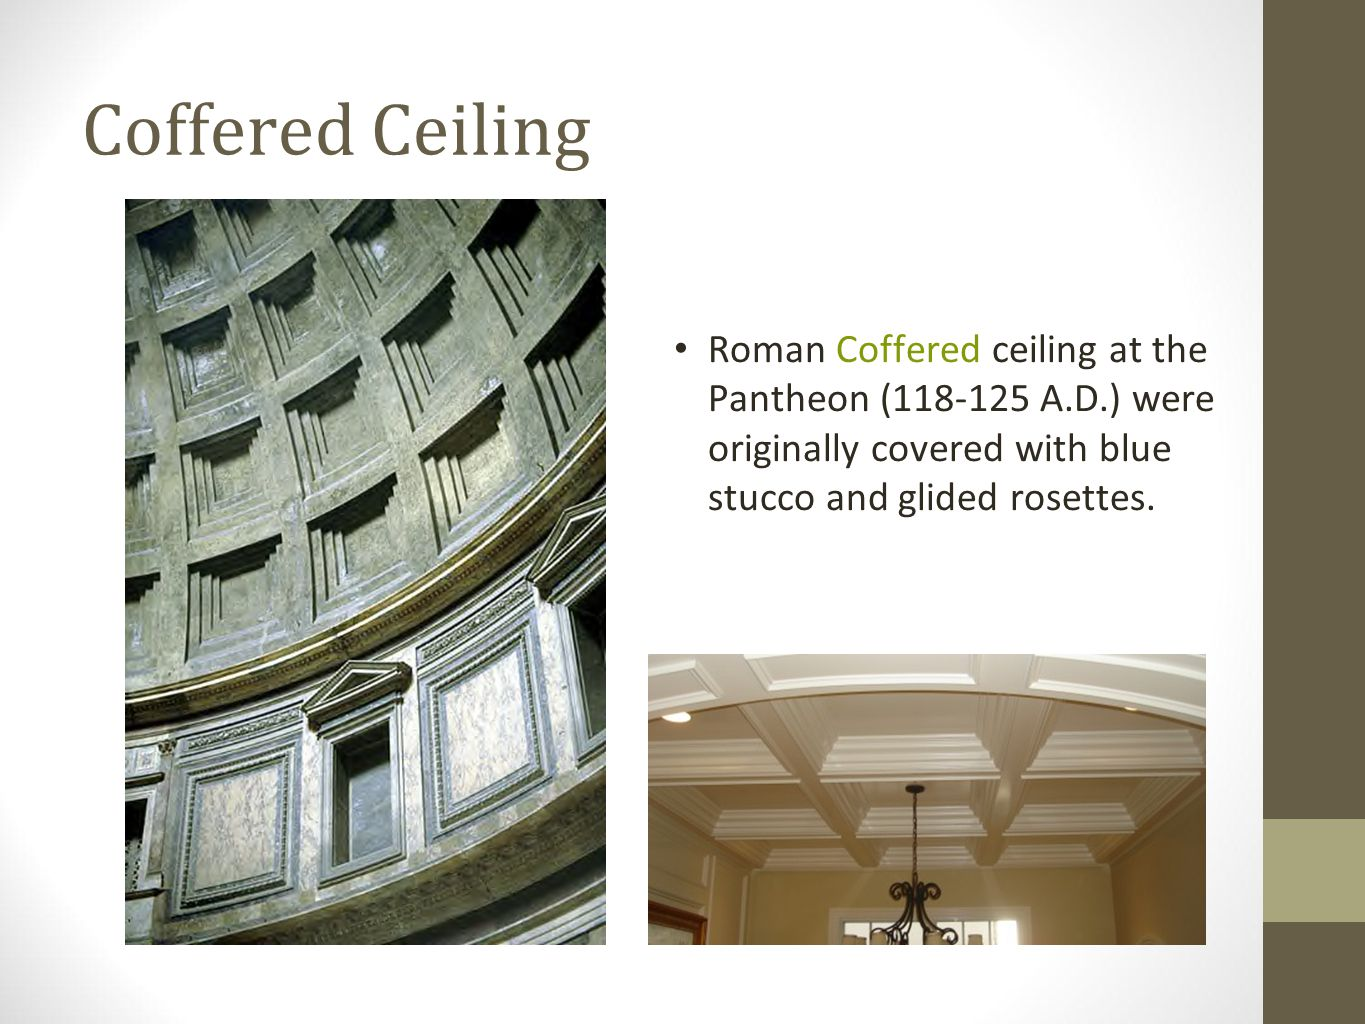 Coffered Ceiling Roman Coffered ceiling at the Pantheon (118-125 A.D.) were originally covered with blue stucco and glided rosettes.